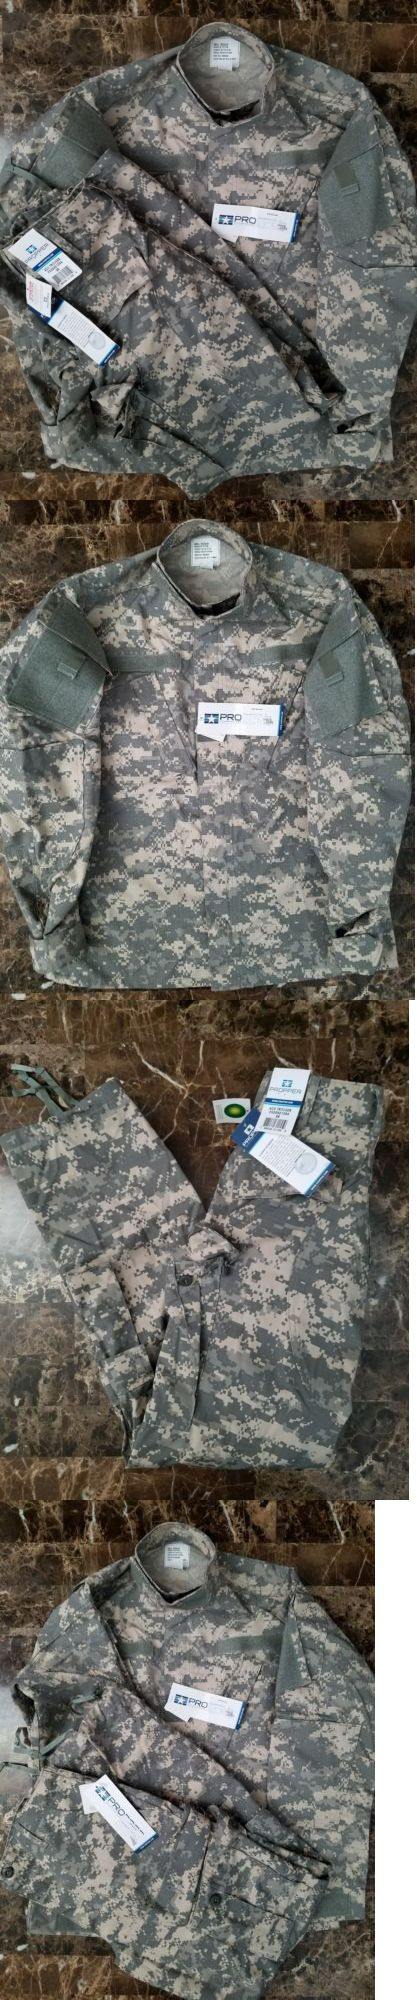 Jacket and Pants Sets 179981: Propper Tactical Military Camo New Jacket And Pants Digi Desert Sz S Outfit Army -> BUY IT NOW ONLY: $49.99 on eBay!